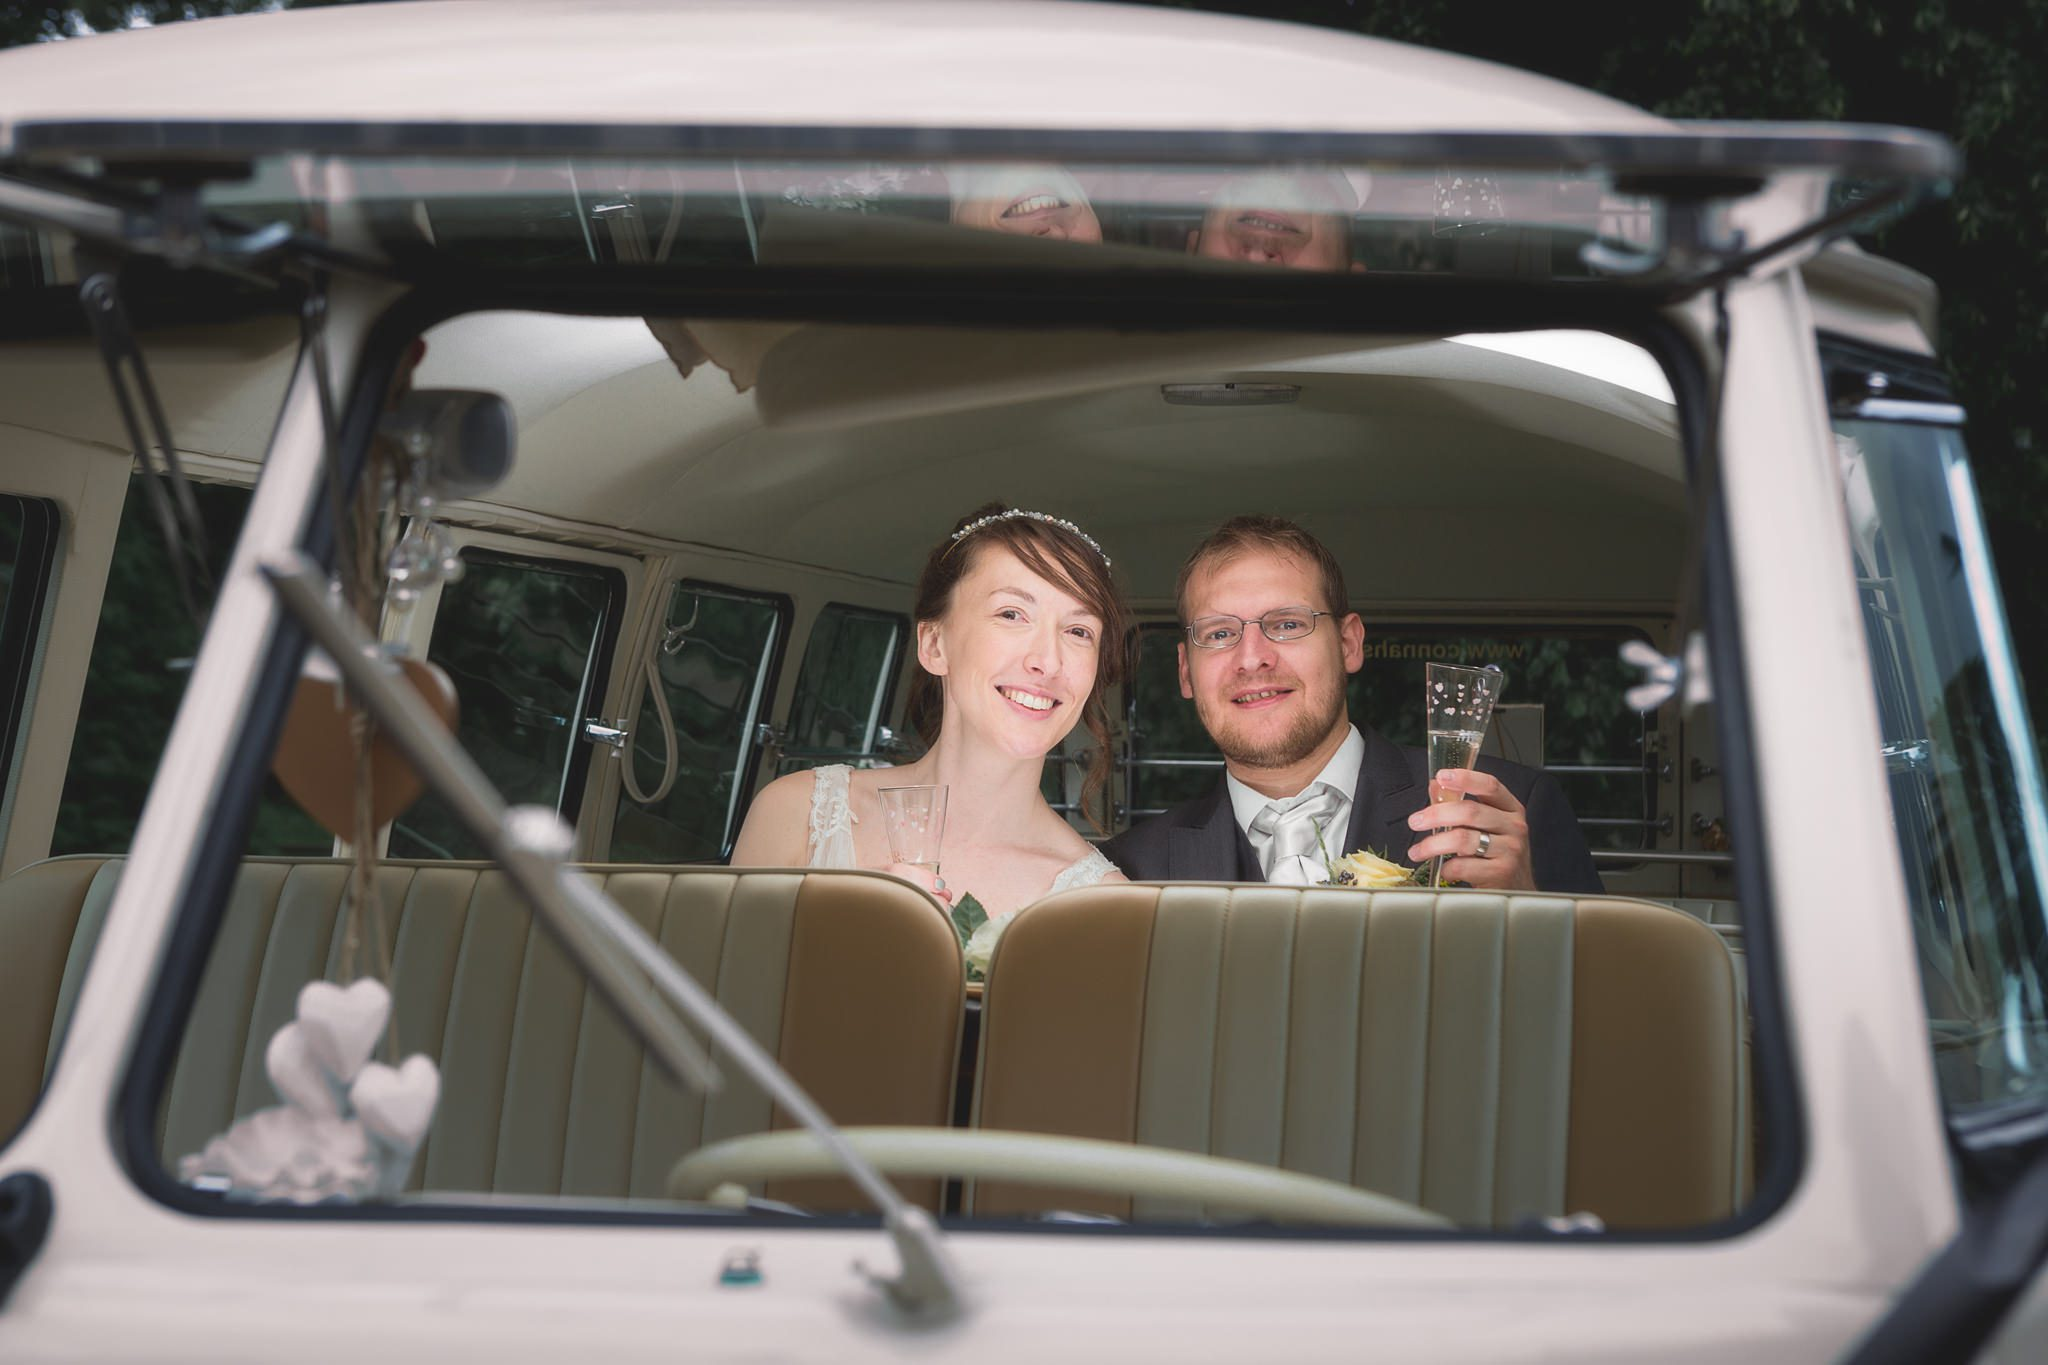 Derbyshire Wedding Photographer - Buxton Campervan